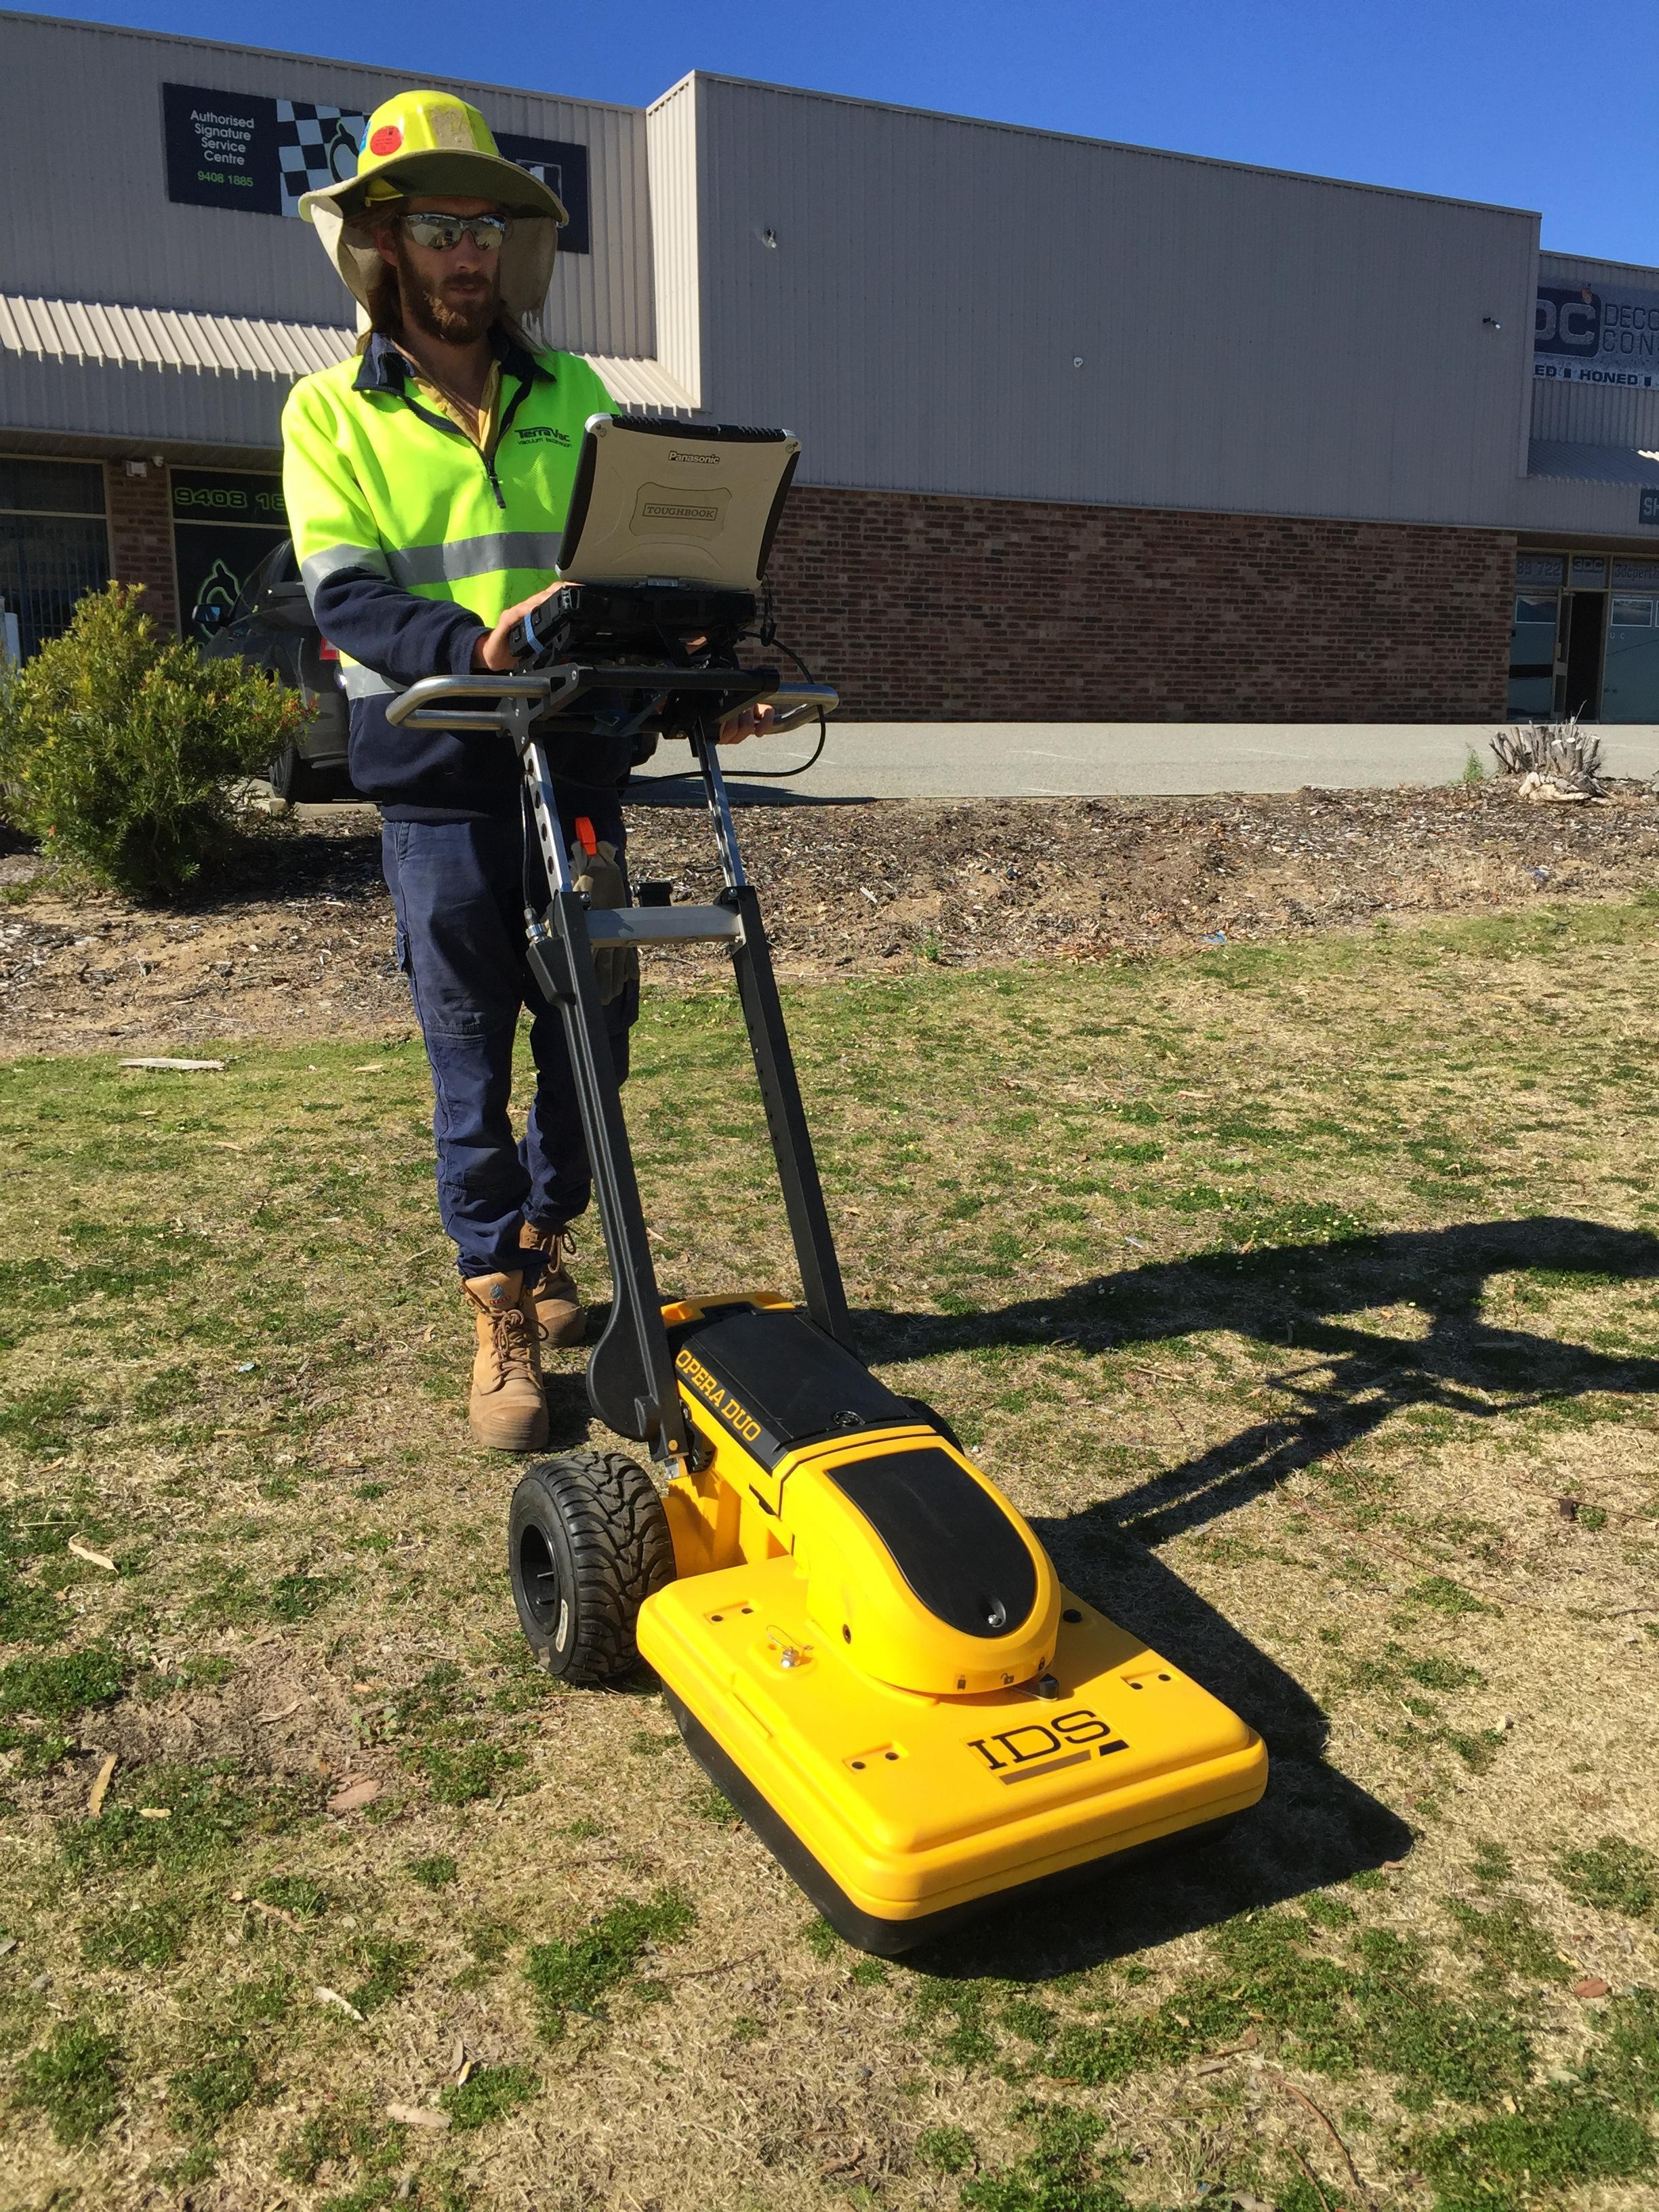 TerraVac GPR Undergound Utility Location - Ground Penetrating Radar